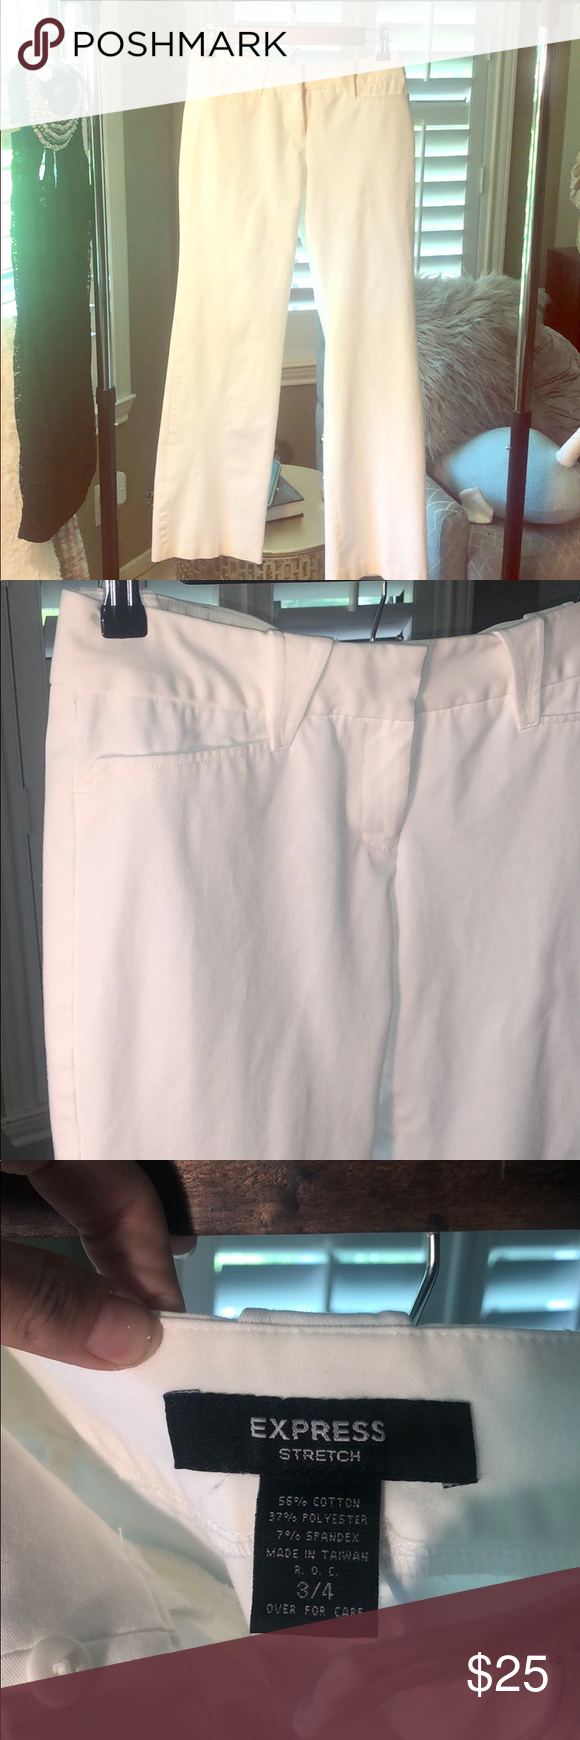 Express white slacks size 3/4 Express white slacks size 3/4 in preloved good condition. One small spot noted on the inside of the waistband (pictured). Not noticeable when being worn.   All items come from a smoke free and pet friendly home Express Pants #whiteslacks Express white slacks size 3/4 Express white slacks size 3/4 in preloved good condition. One small spot noted on the inside of the waistband (pictured). Not noticeable when being worn.   All items come from a smoke free and pet frien #whiteslacks